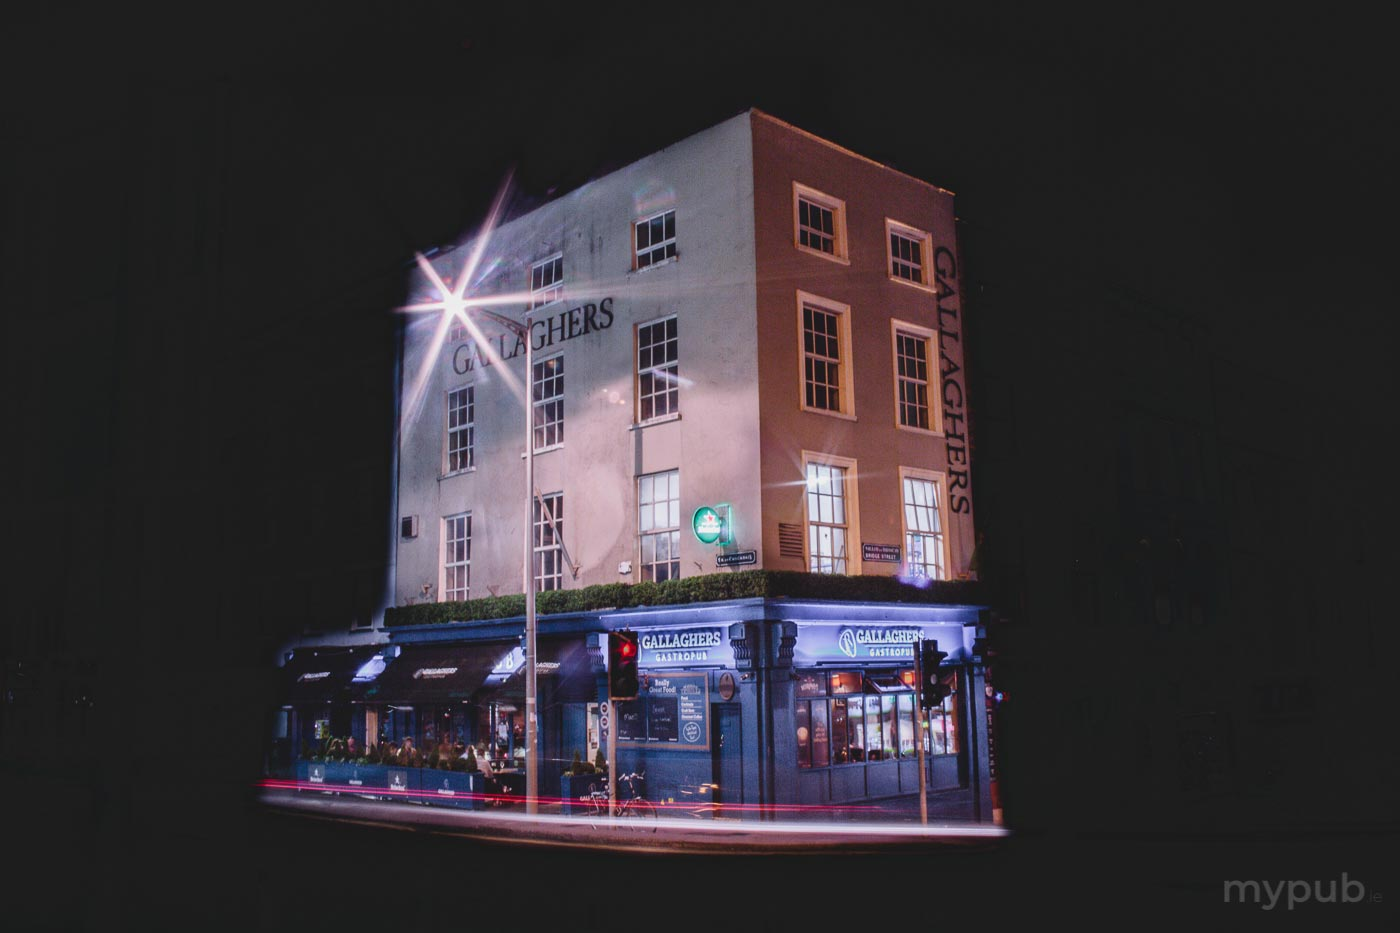 Gallaghers Gastropub - Cork City